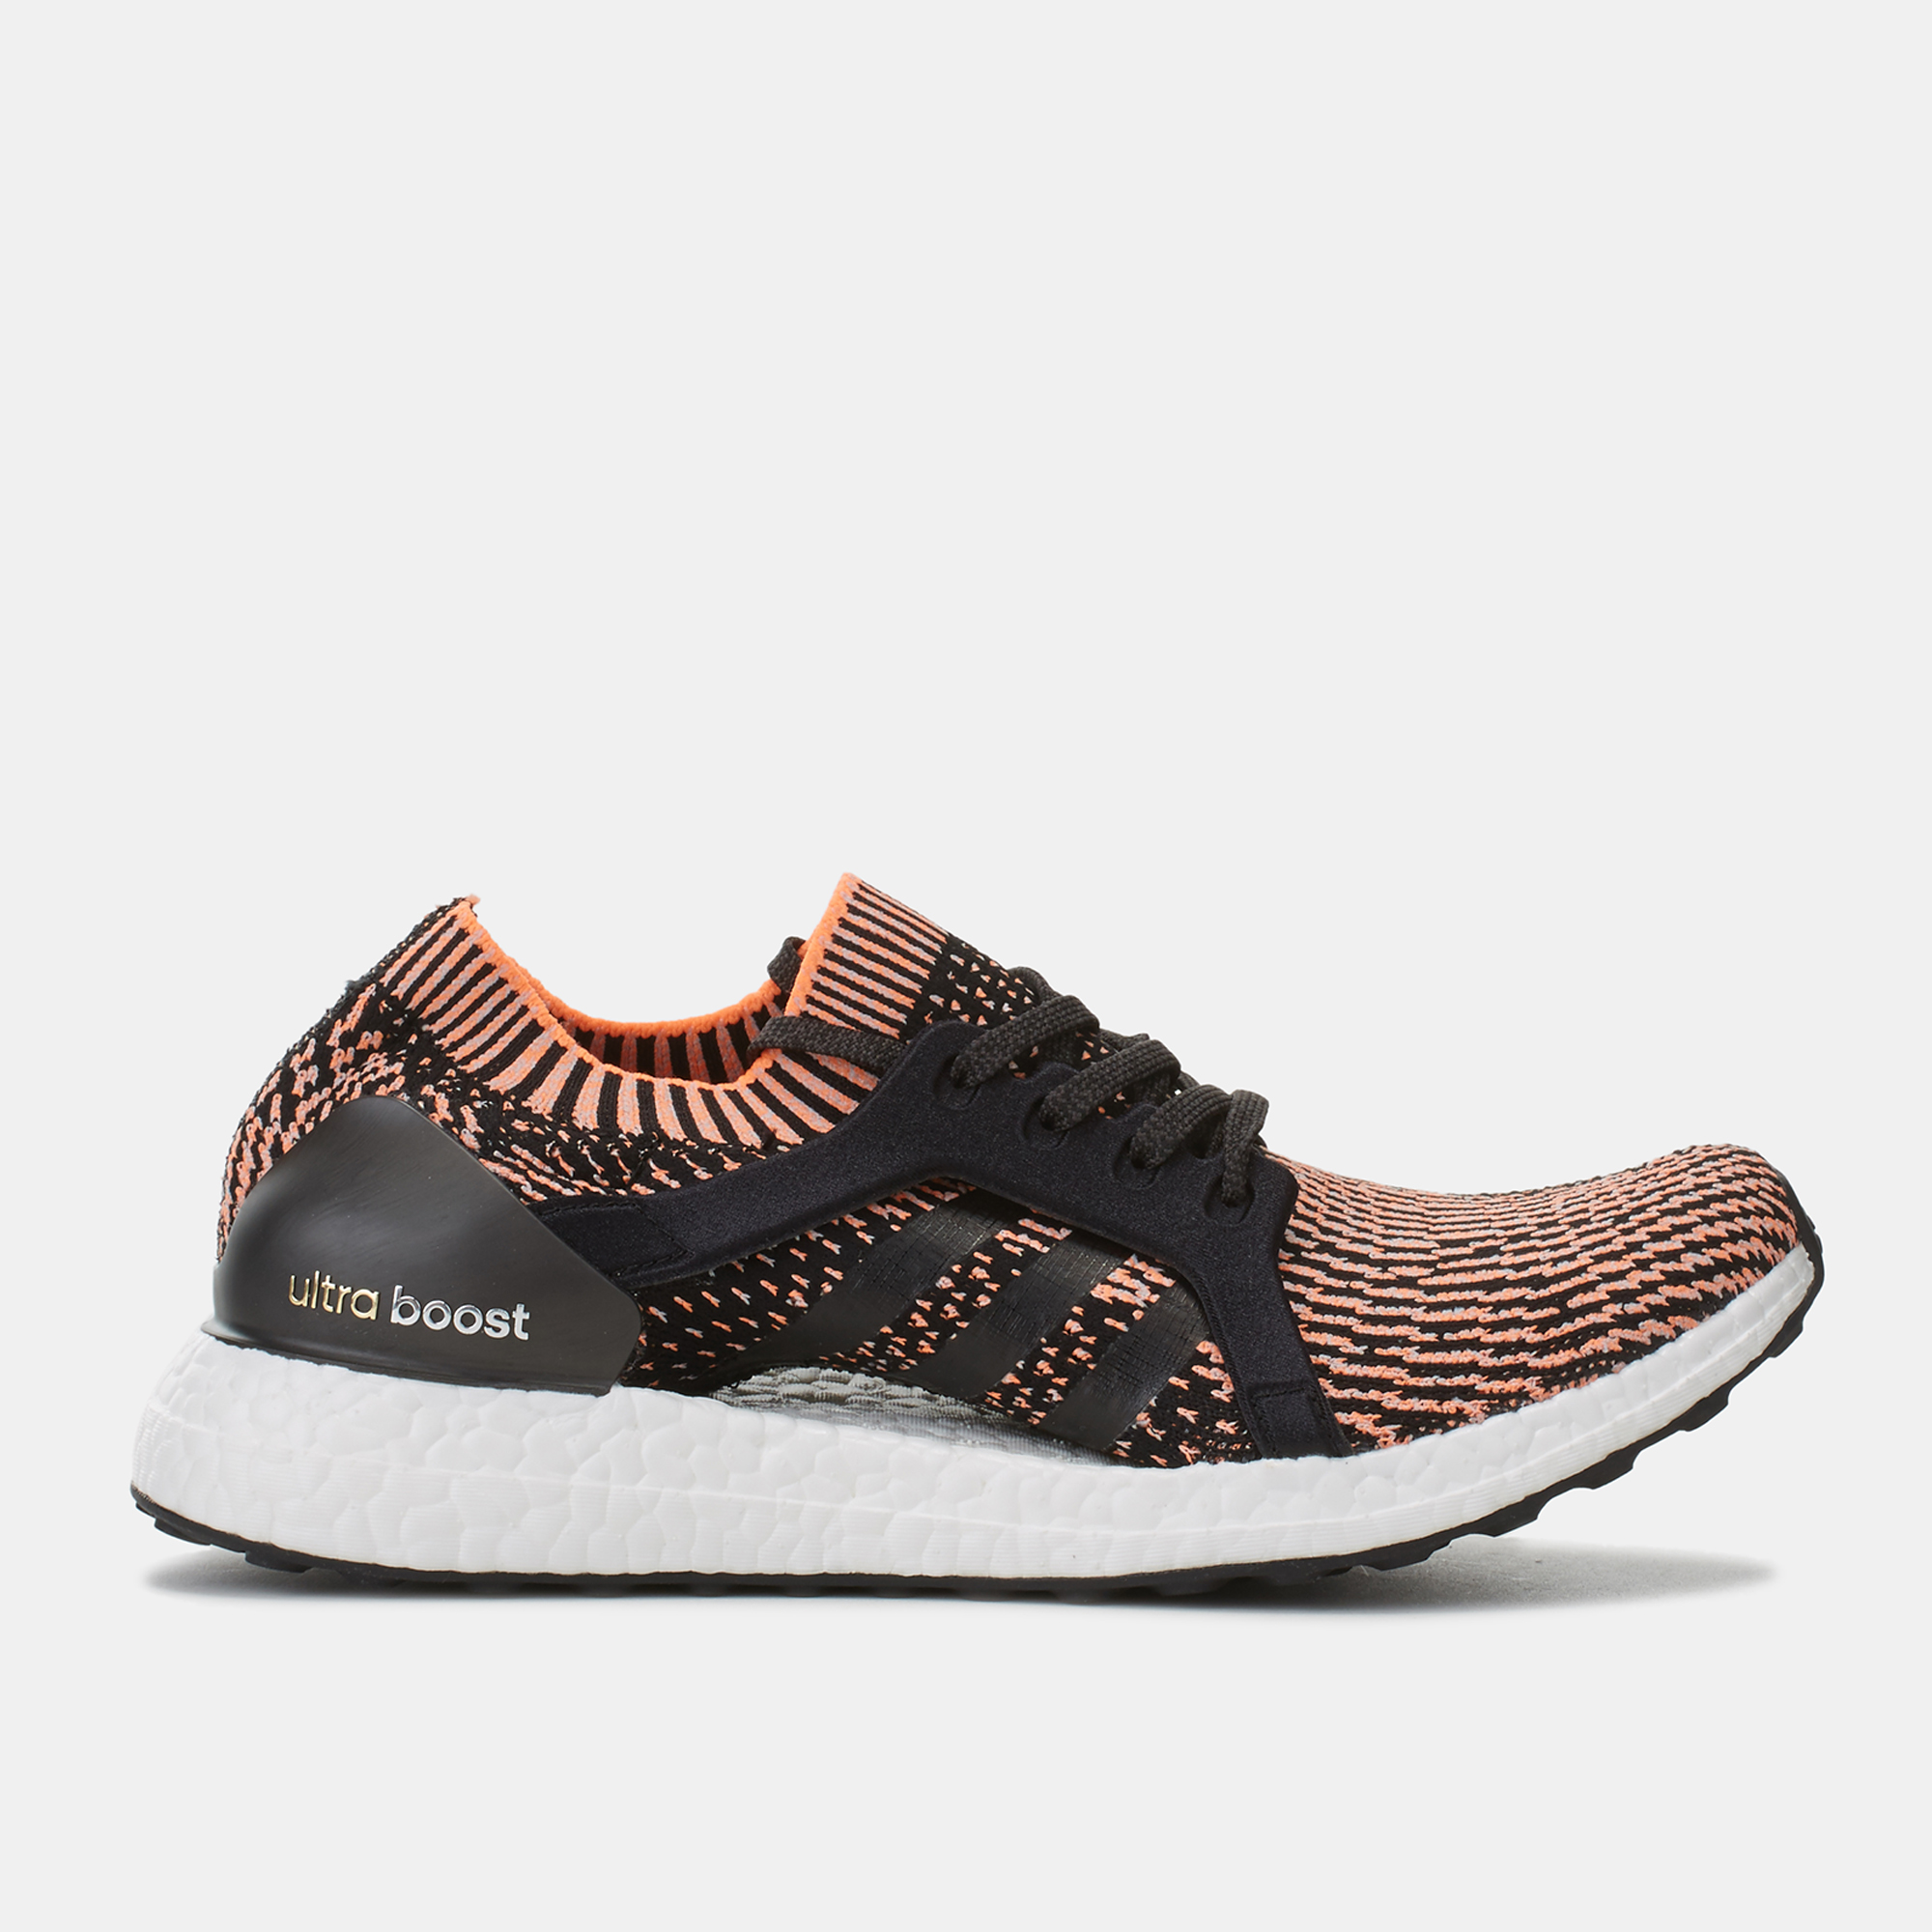 ab07a99a8bc70 Shop Black adidas Ultraboost X Shoe for Womens by adidas 3